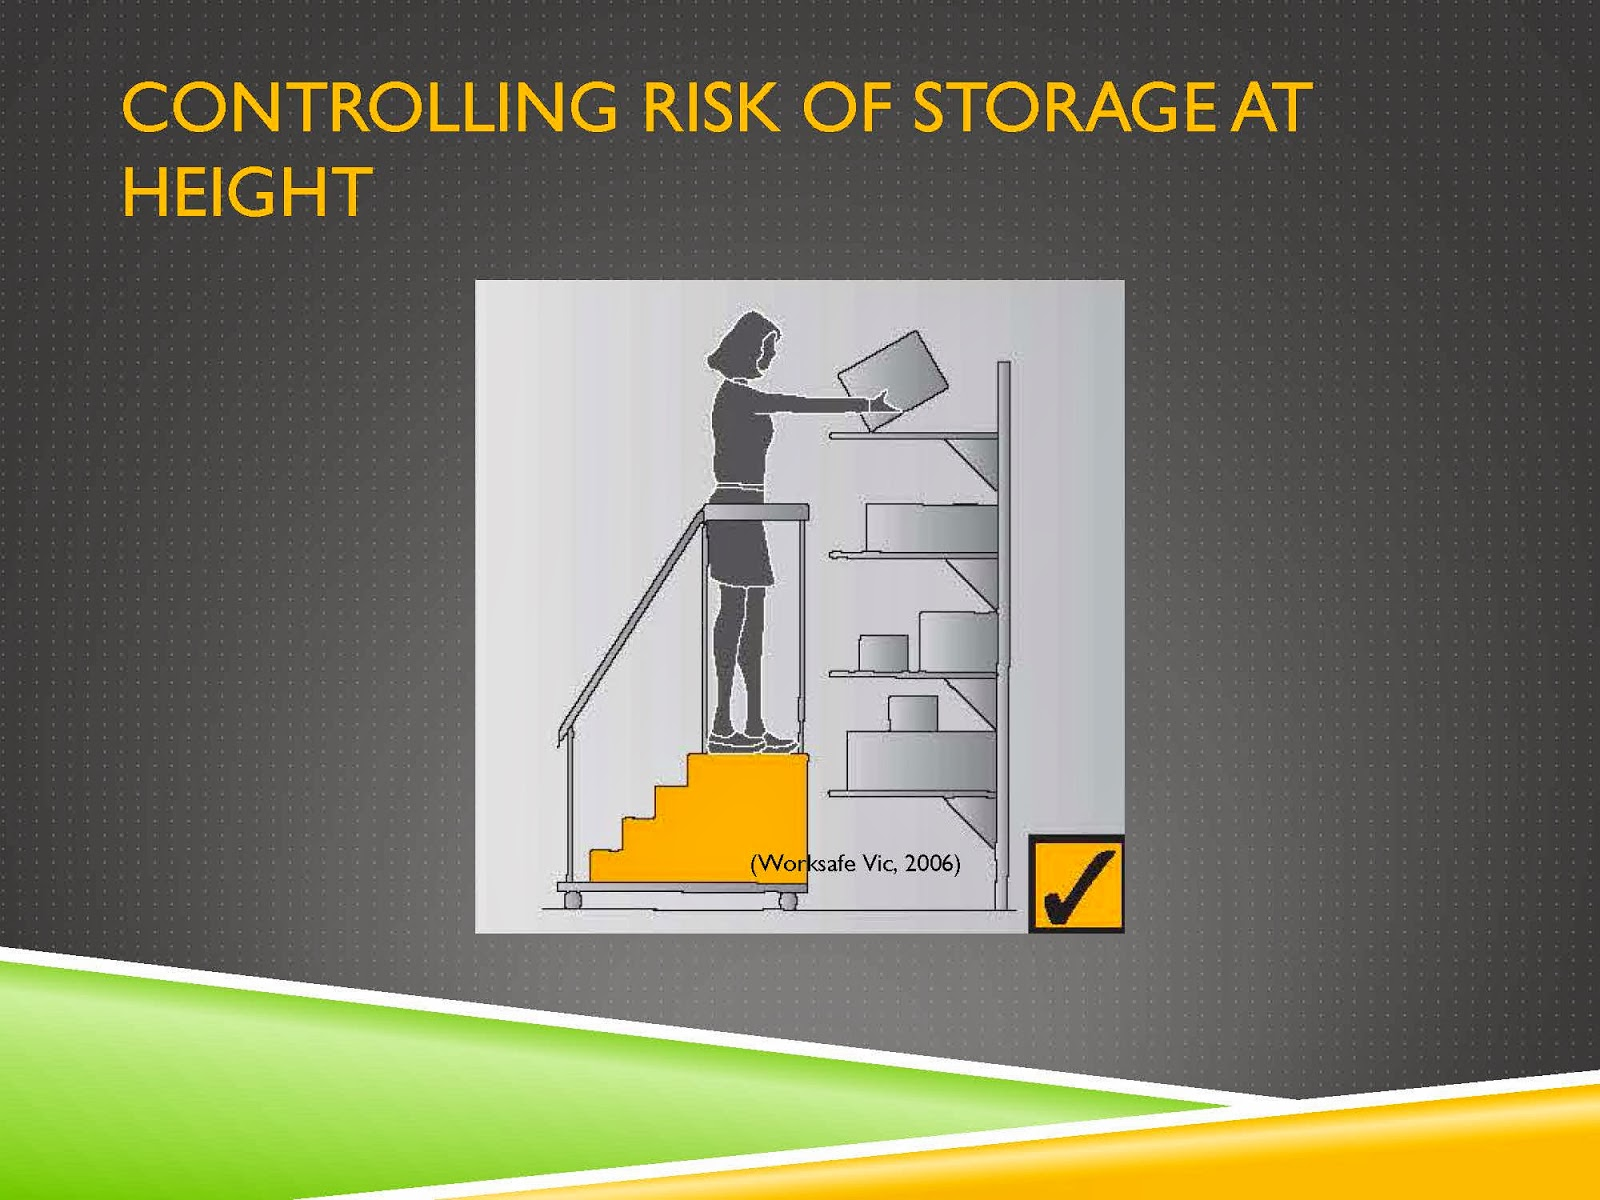 CONTROL RISKS OF STORAGE